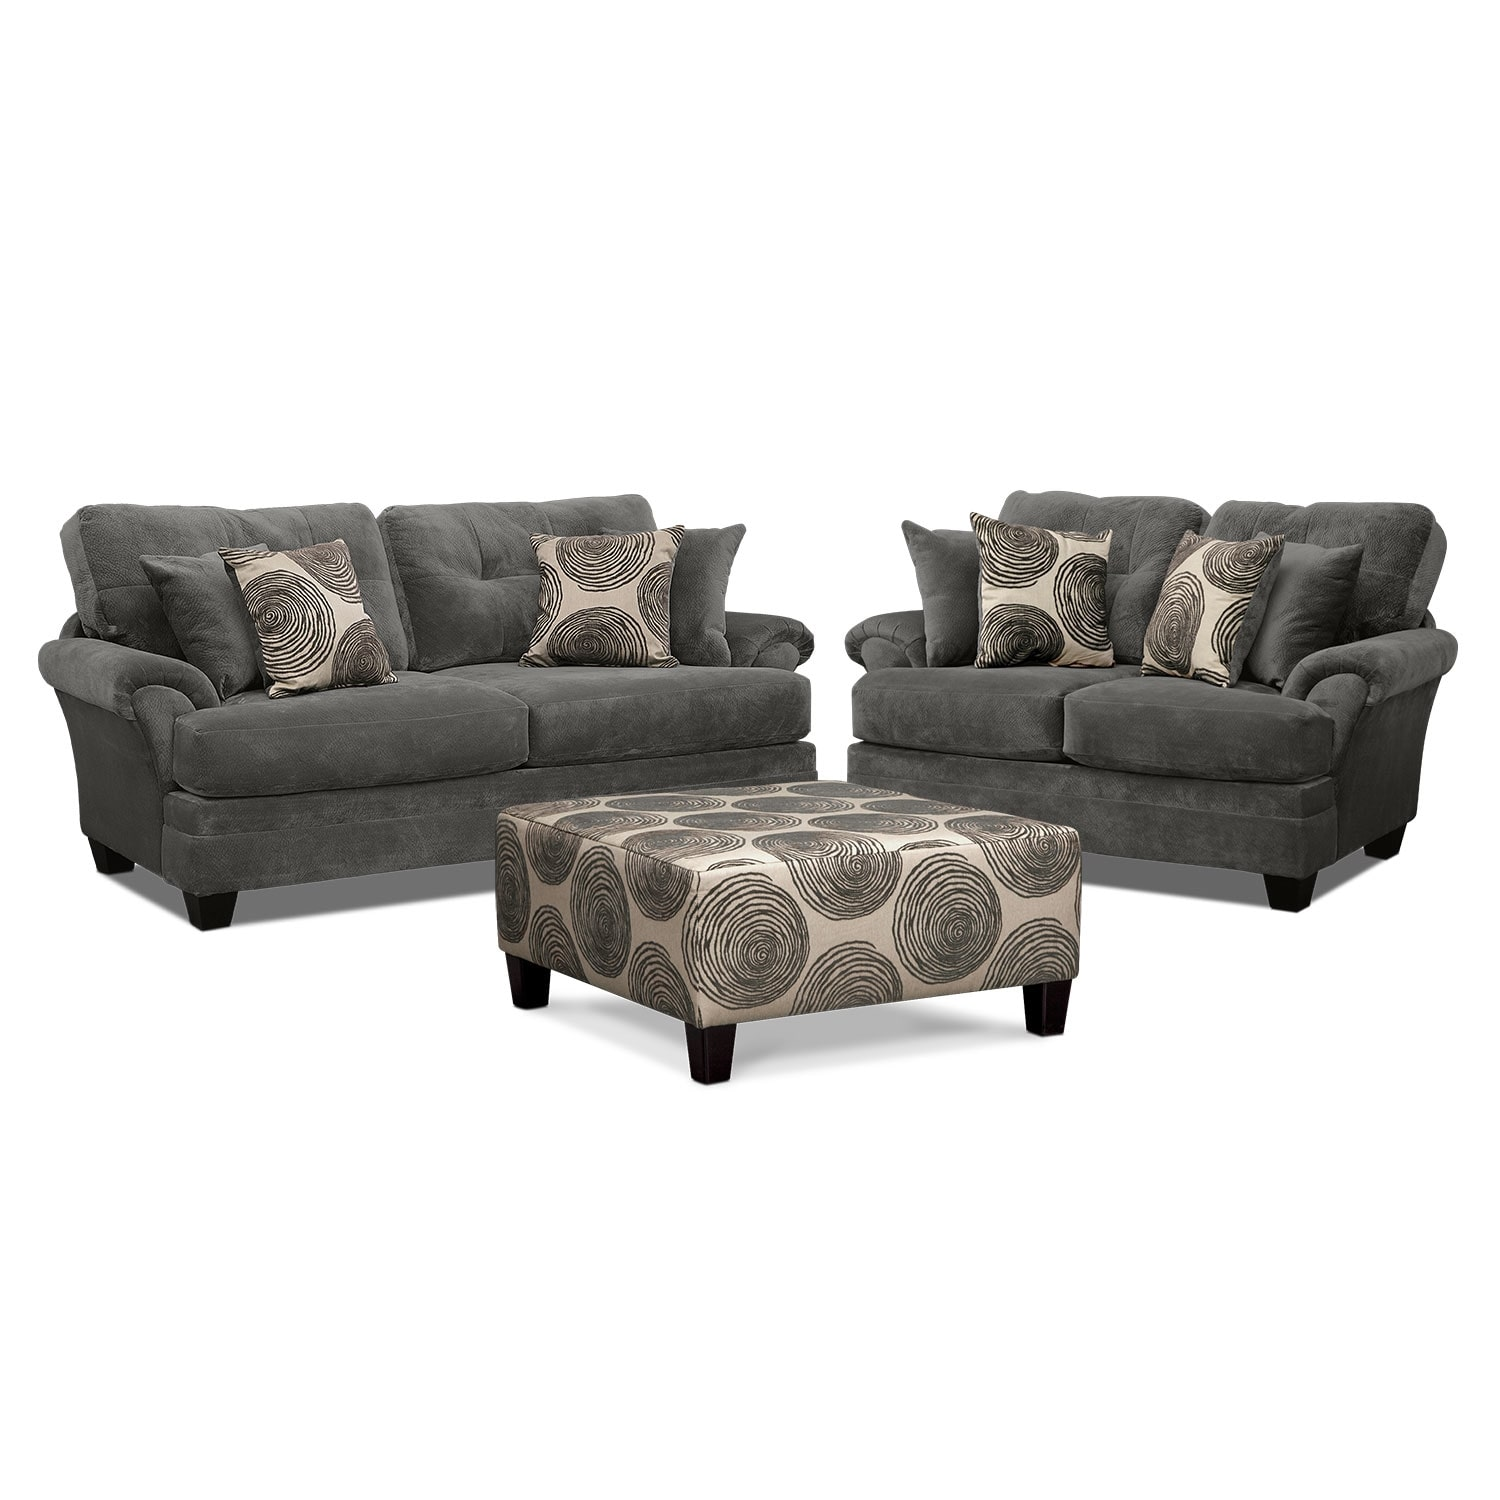 Cordelle Sofa Loveseat And Cocktail Ottoman Set Gray American Signature Furniture